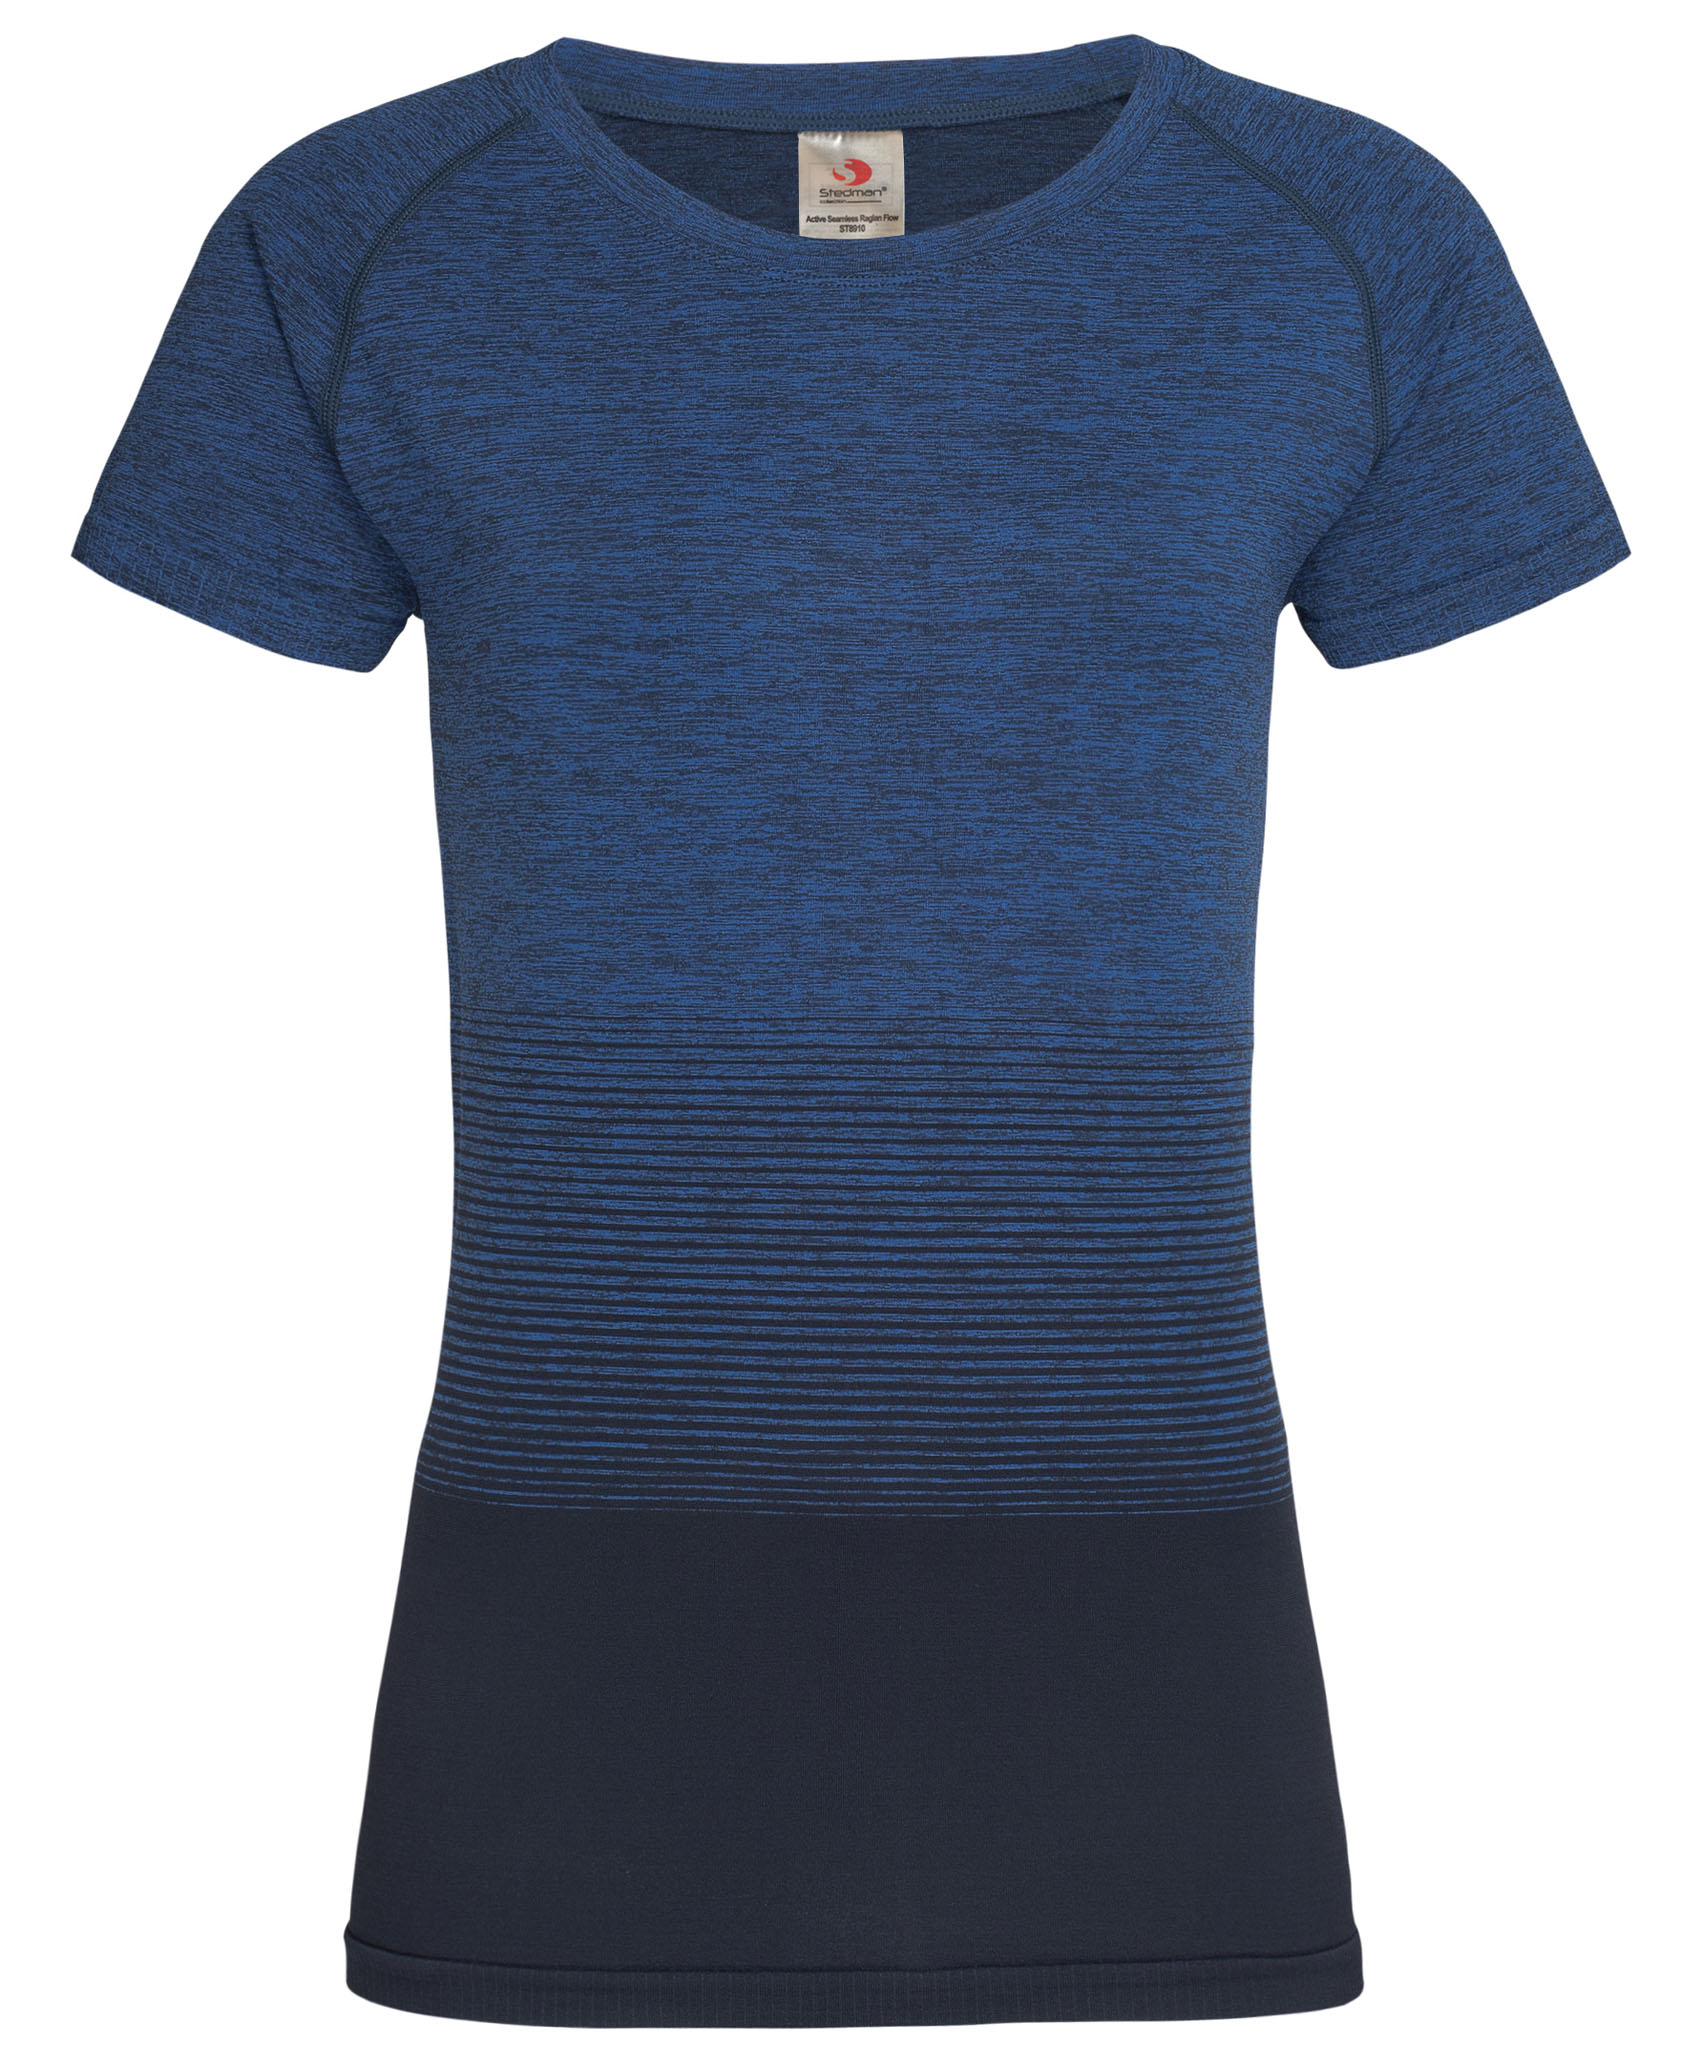 Stedman T-shirt seamless raglan for her